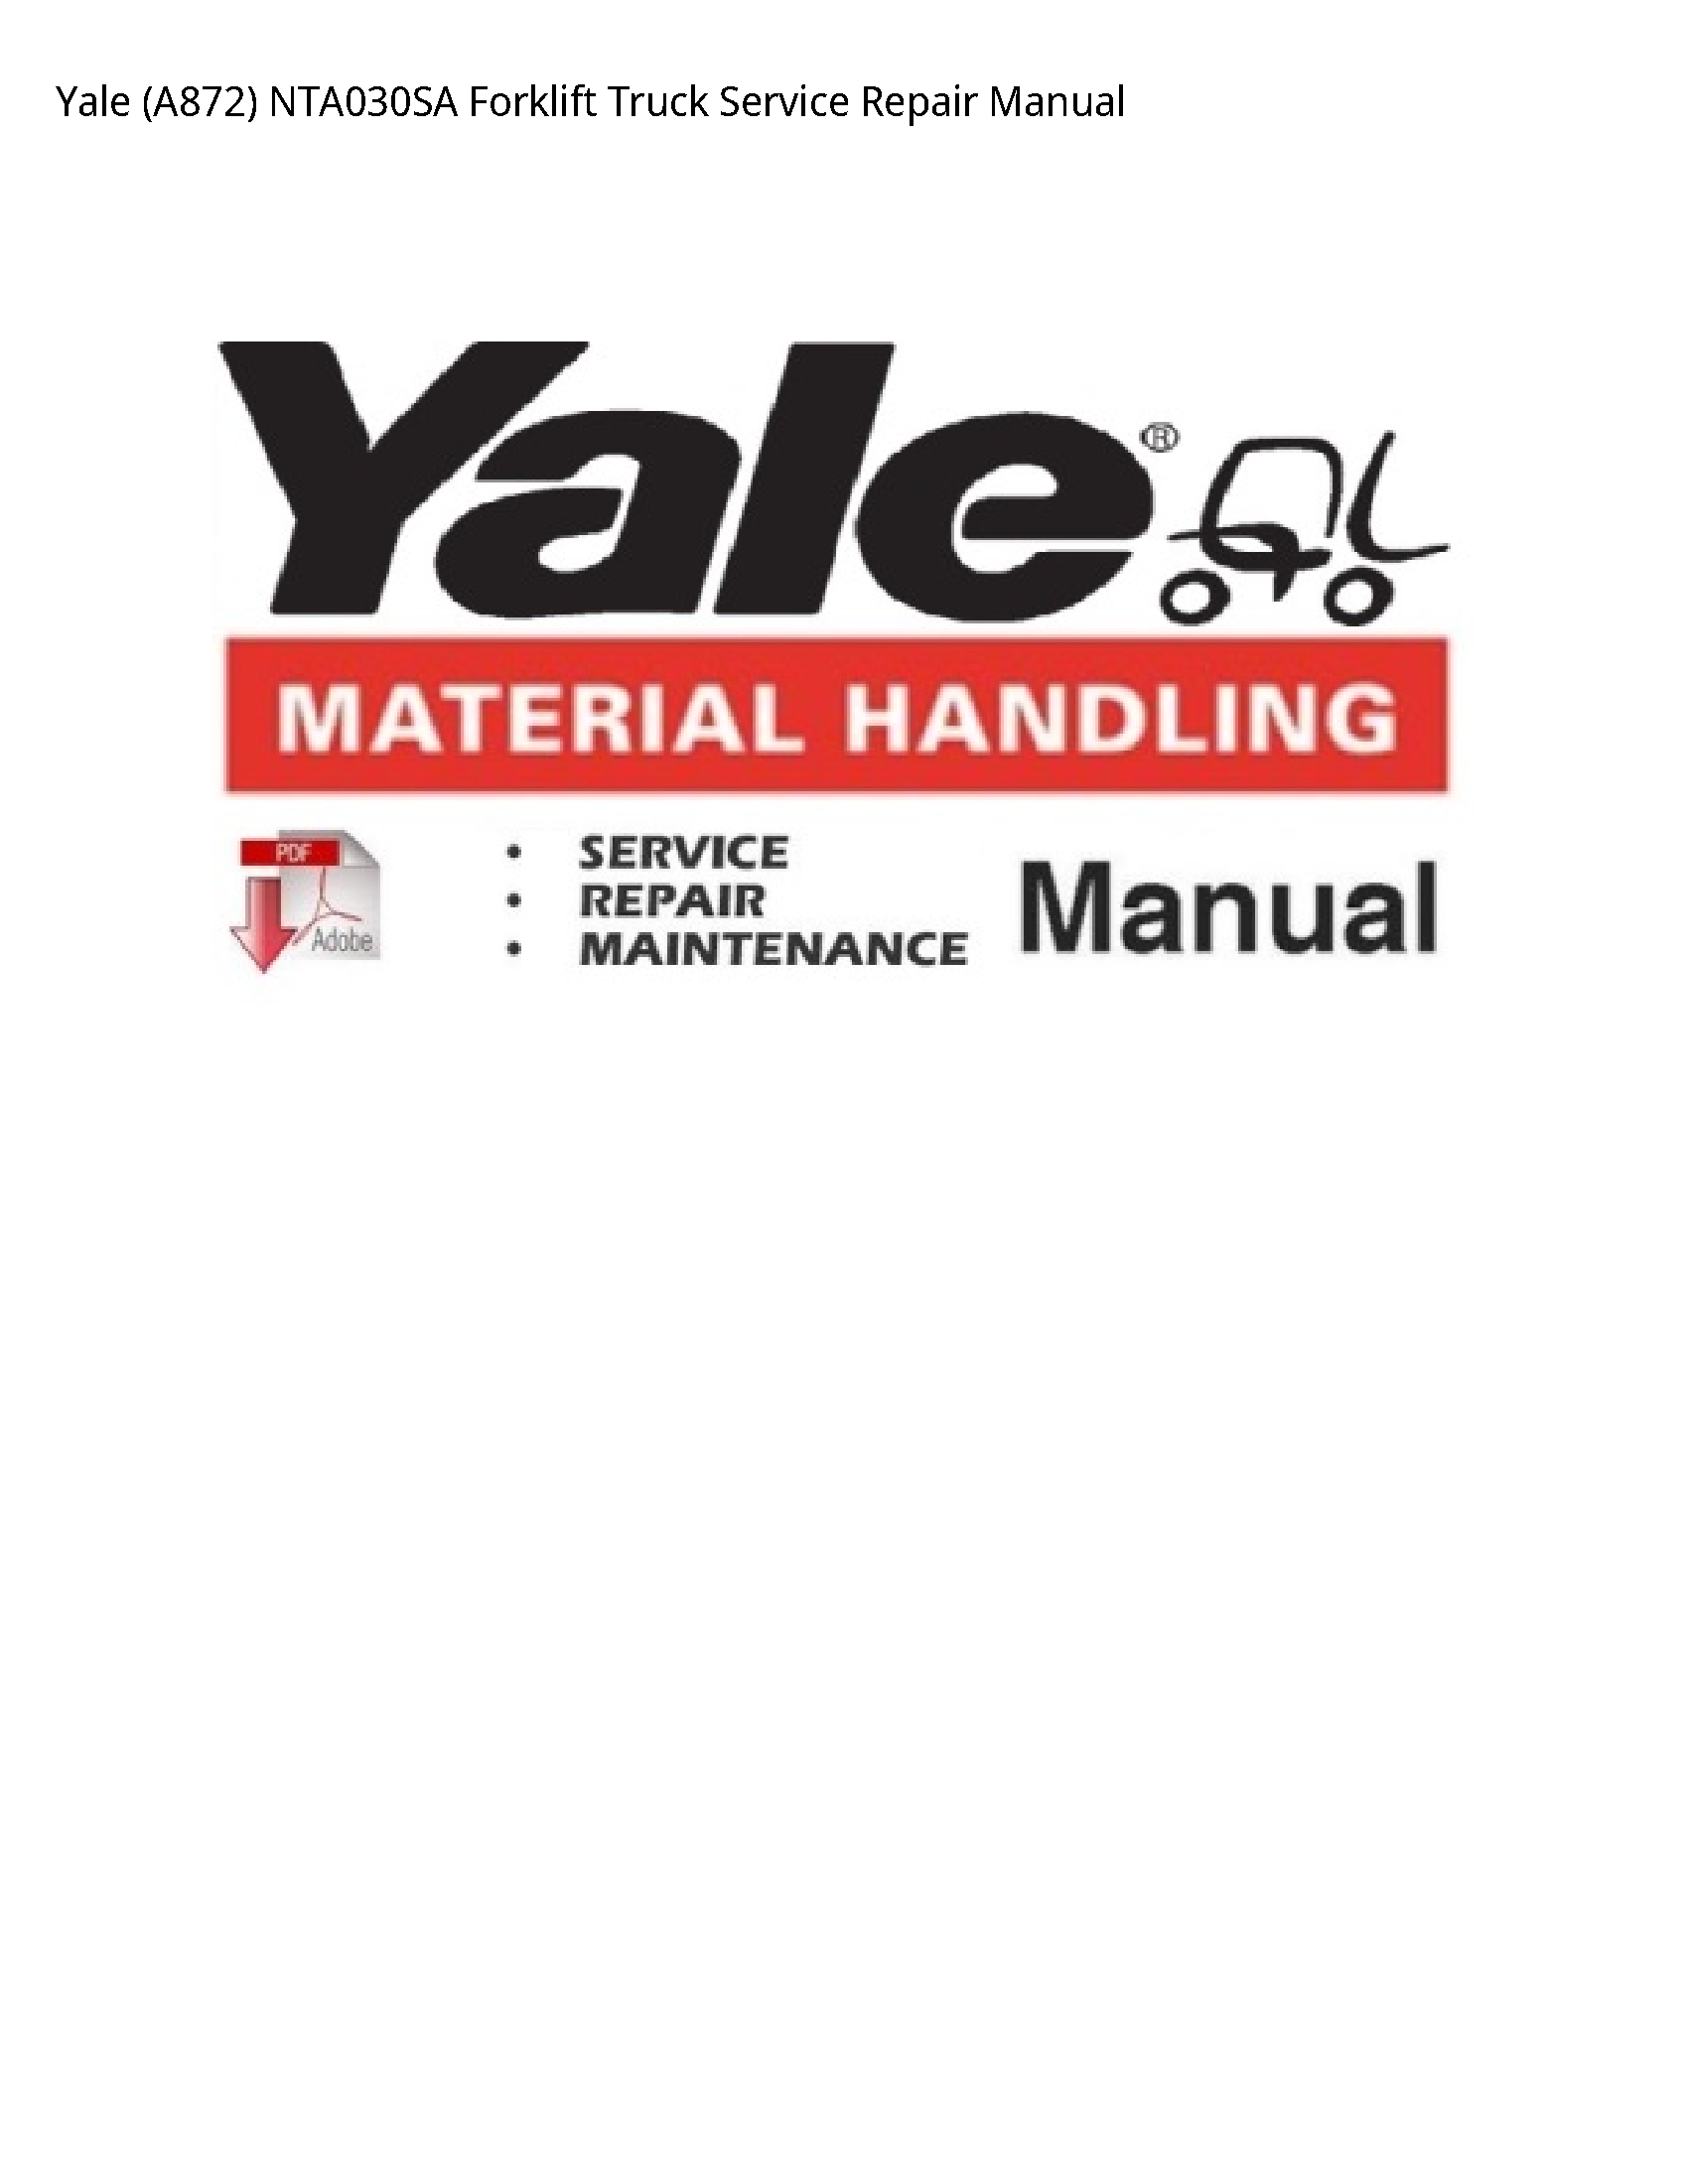 Yale (A872) Forklift Truck manual